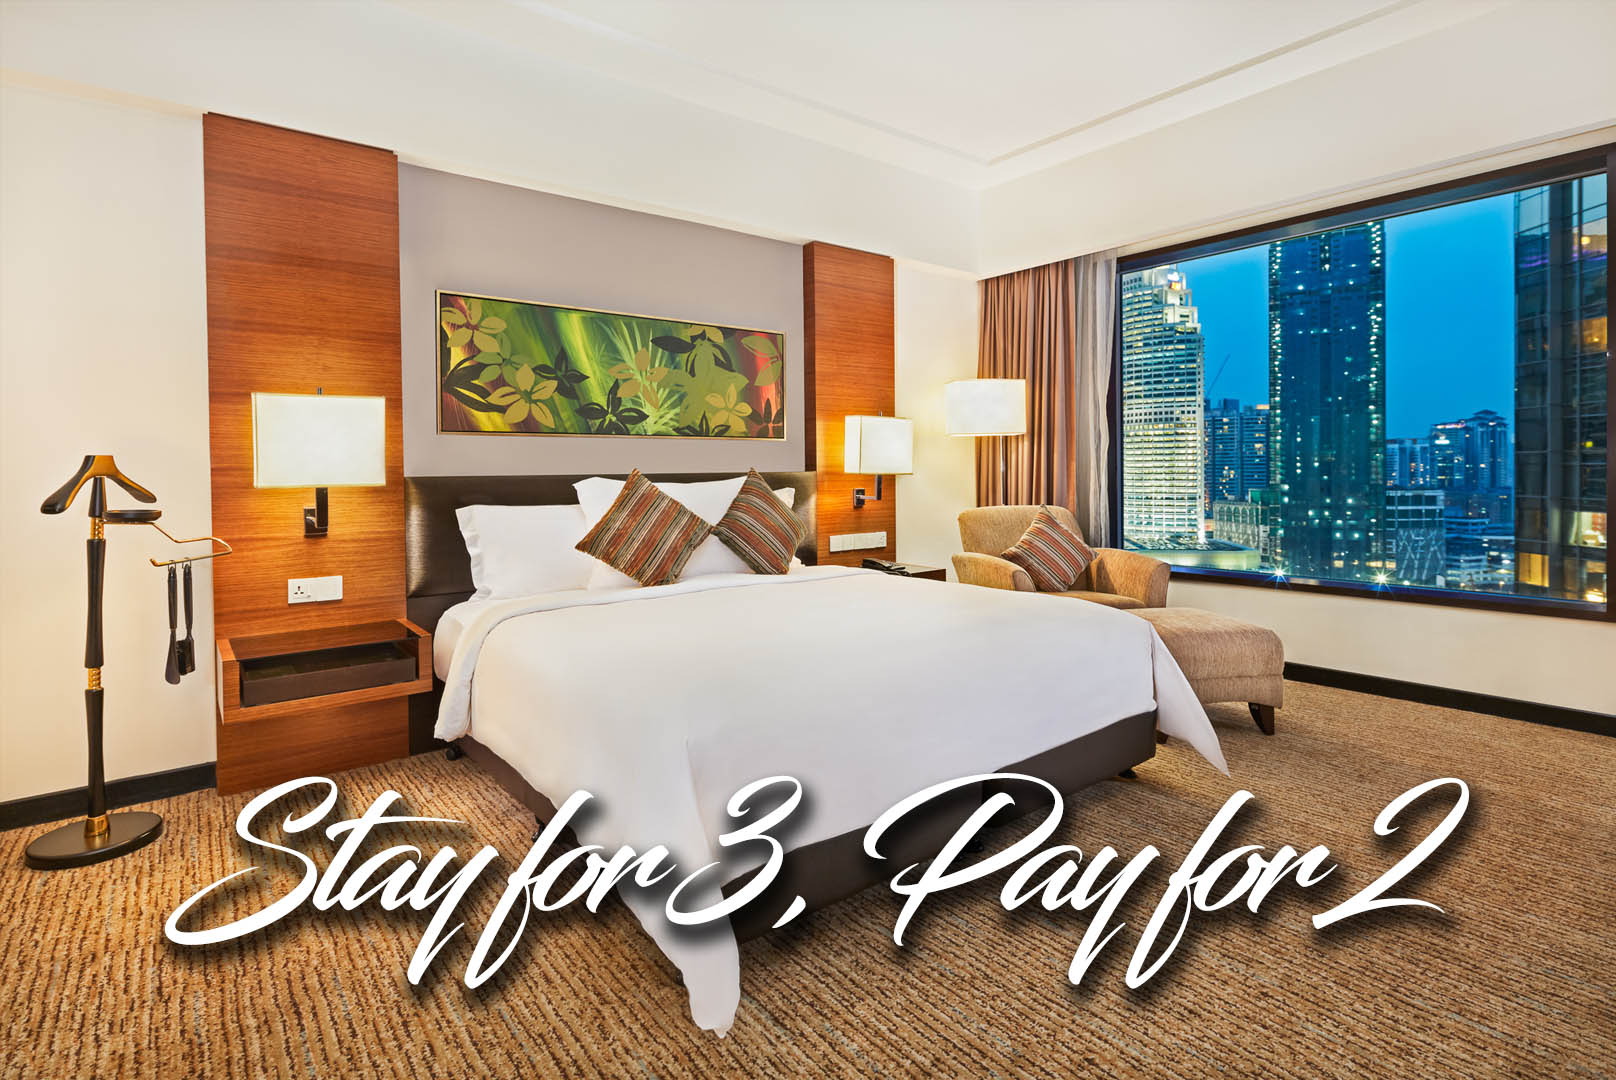 Stay 3 Nights and Pay 2 Nights